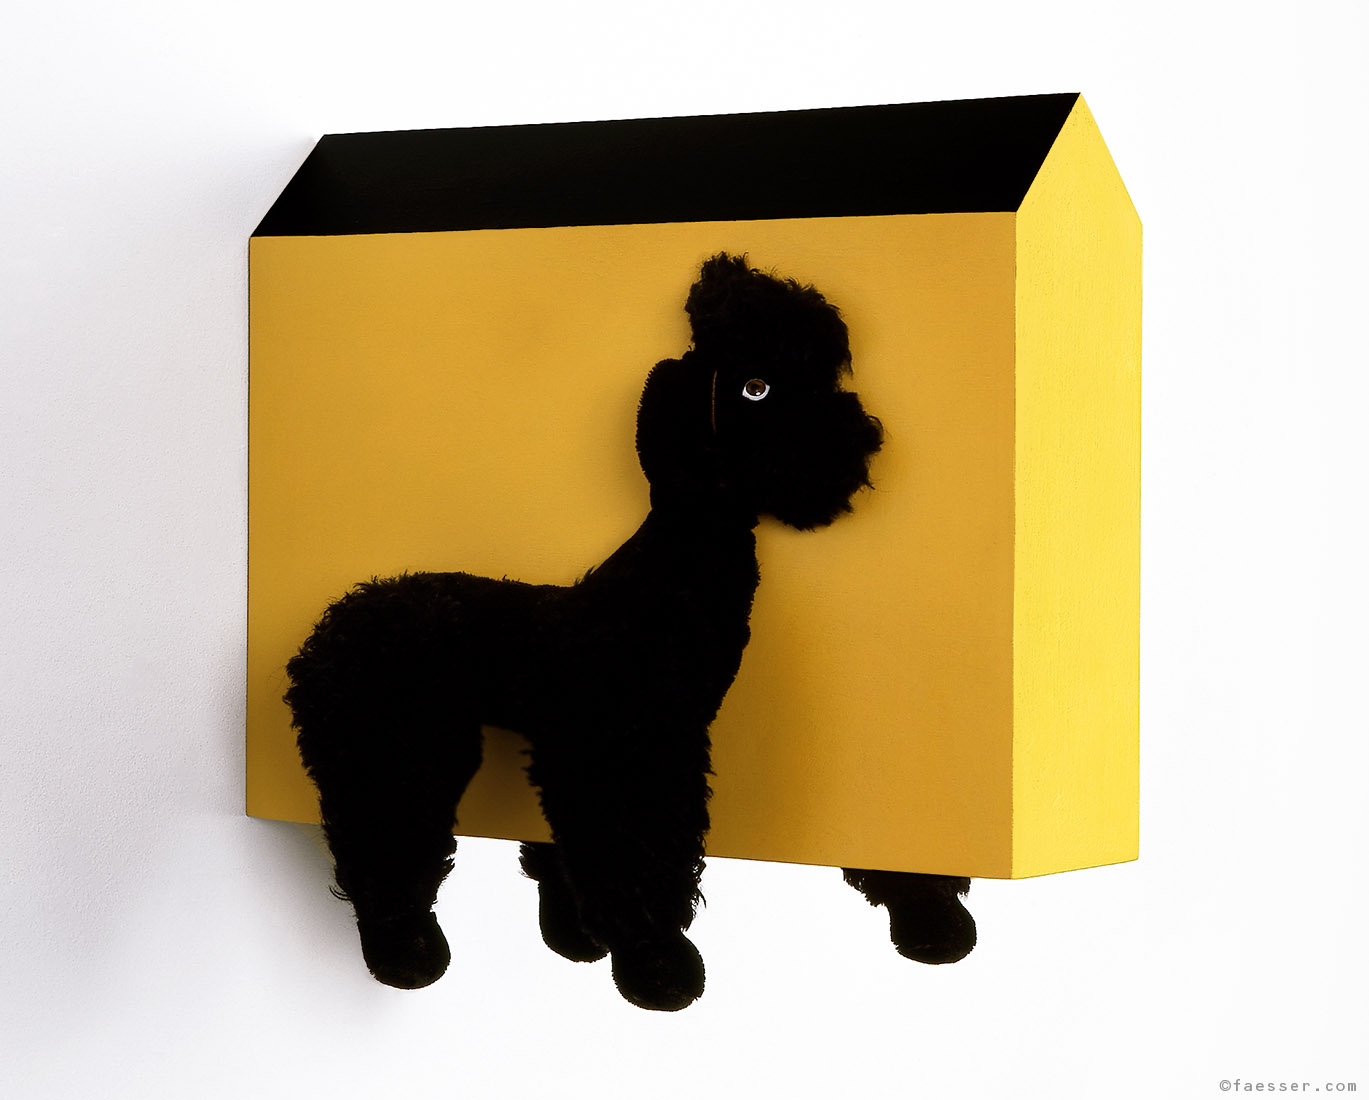 Halved plush poodle with central house; artist Roland Faesser, sculptor and painter 1999